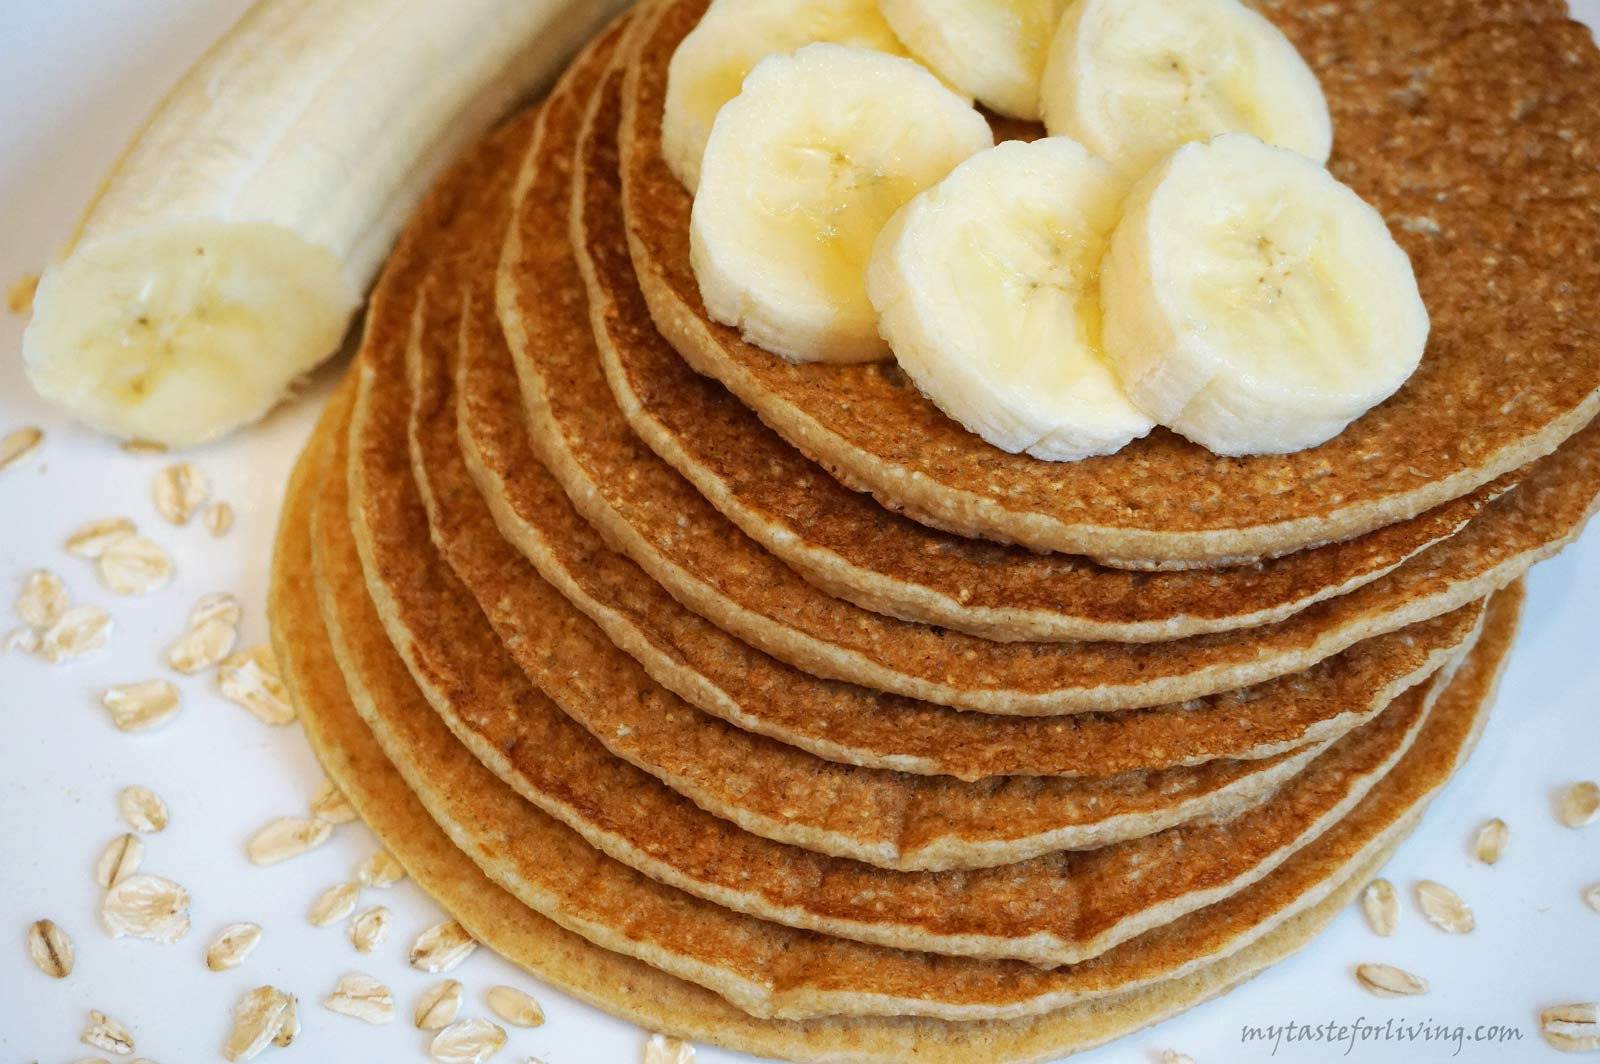 These pancakes are extremely easy to prepare - just put all the ingredients in a blender and your mixture is ready in a minute. You get delicious, appetizing and filling pancakes to start the day with! They are made with banana, non dairy milk and oatmeal and are suitable for vegans.